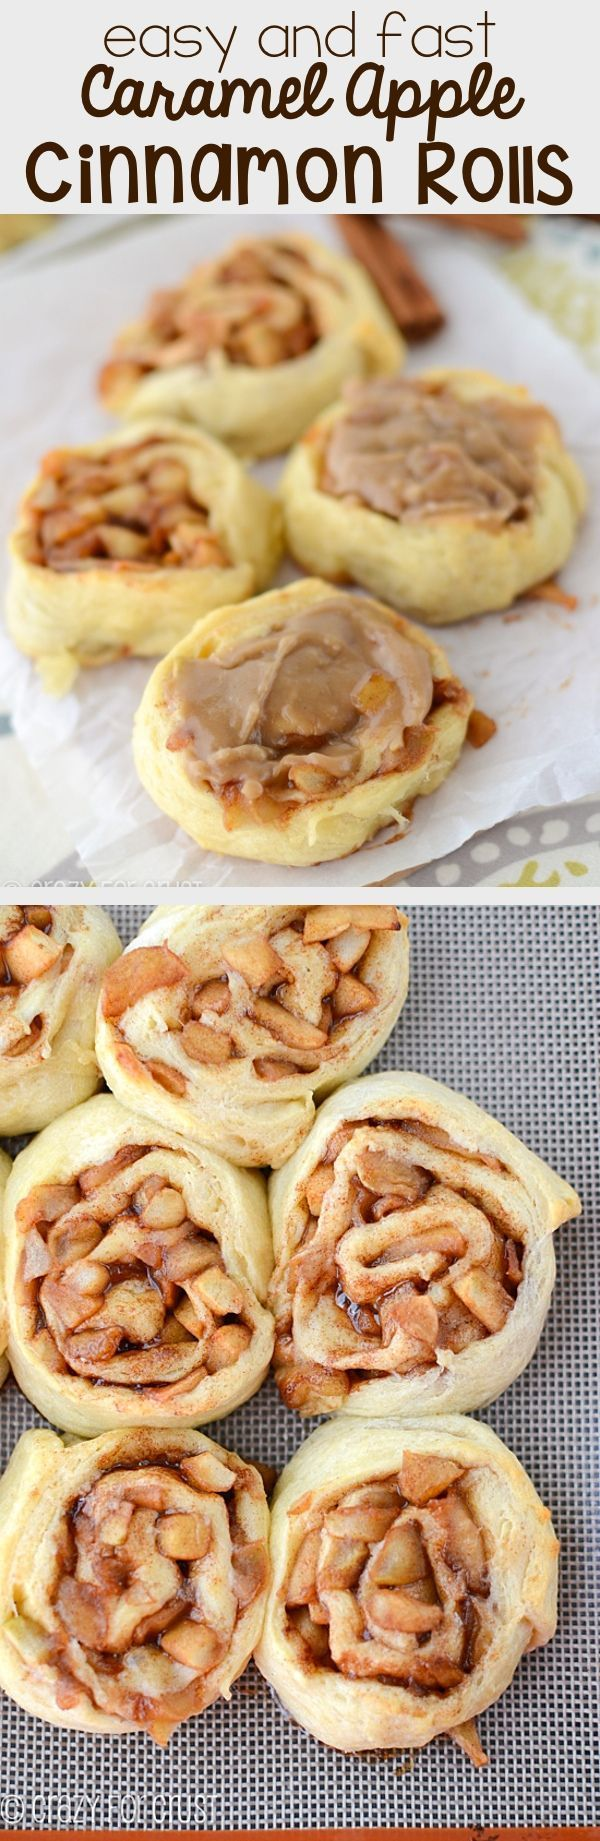 Easy Caramel Apple Cinnamon Rolls - this fast and easy recipe is perfect for apple season! Apple stuffed cinnamon rolls topped with the BEST Caramel Icing!